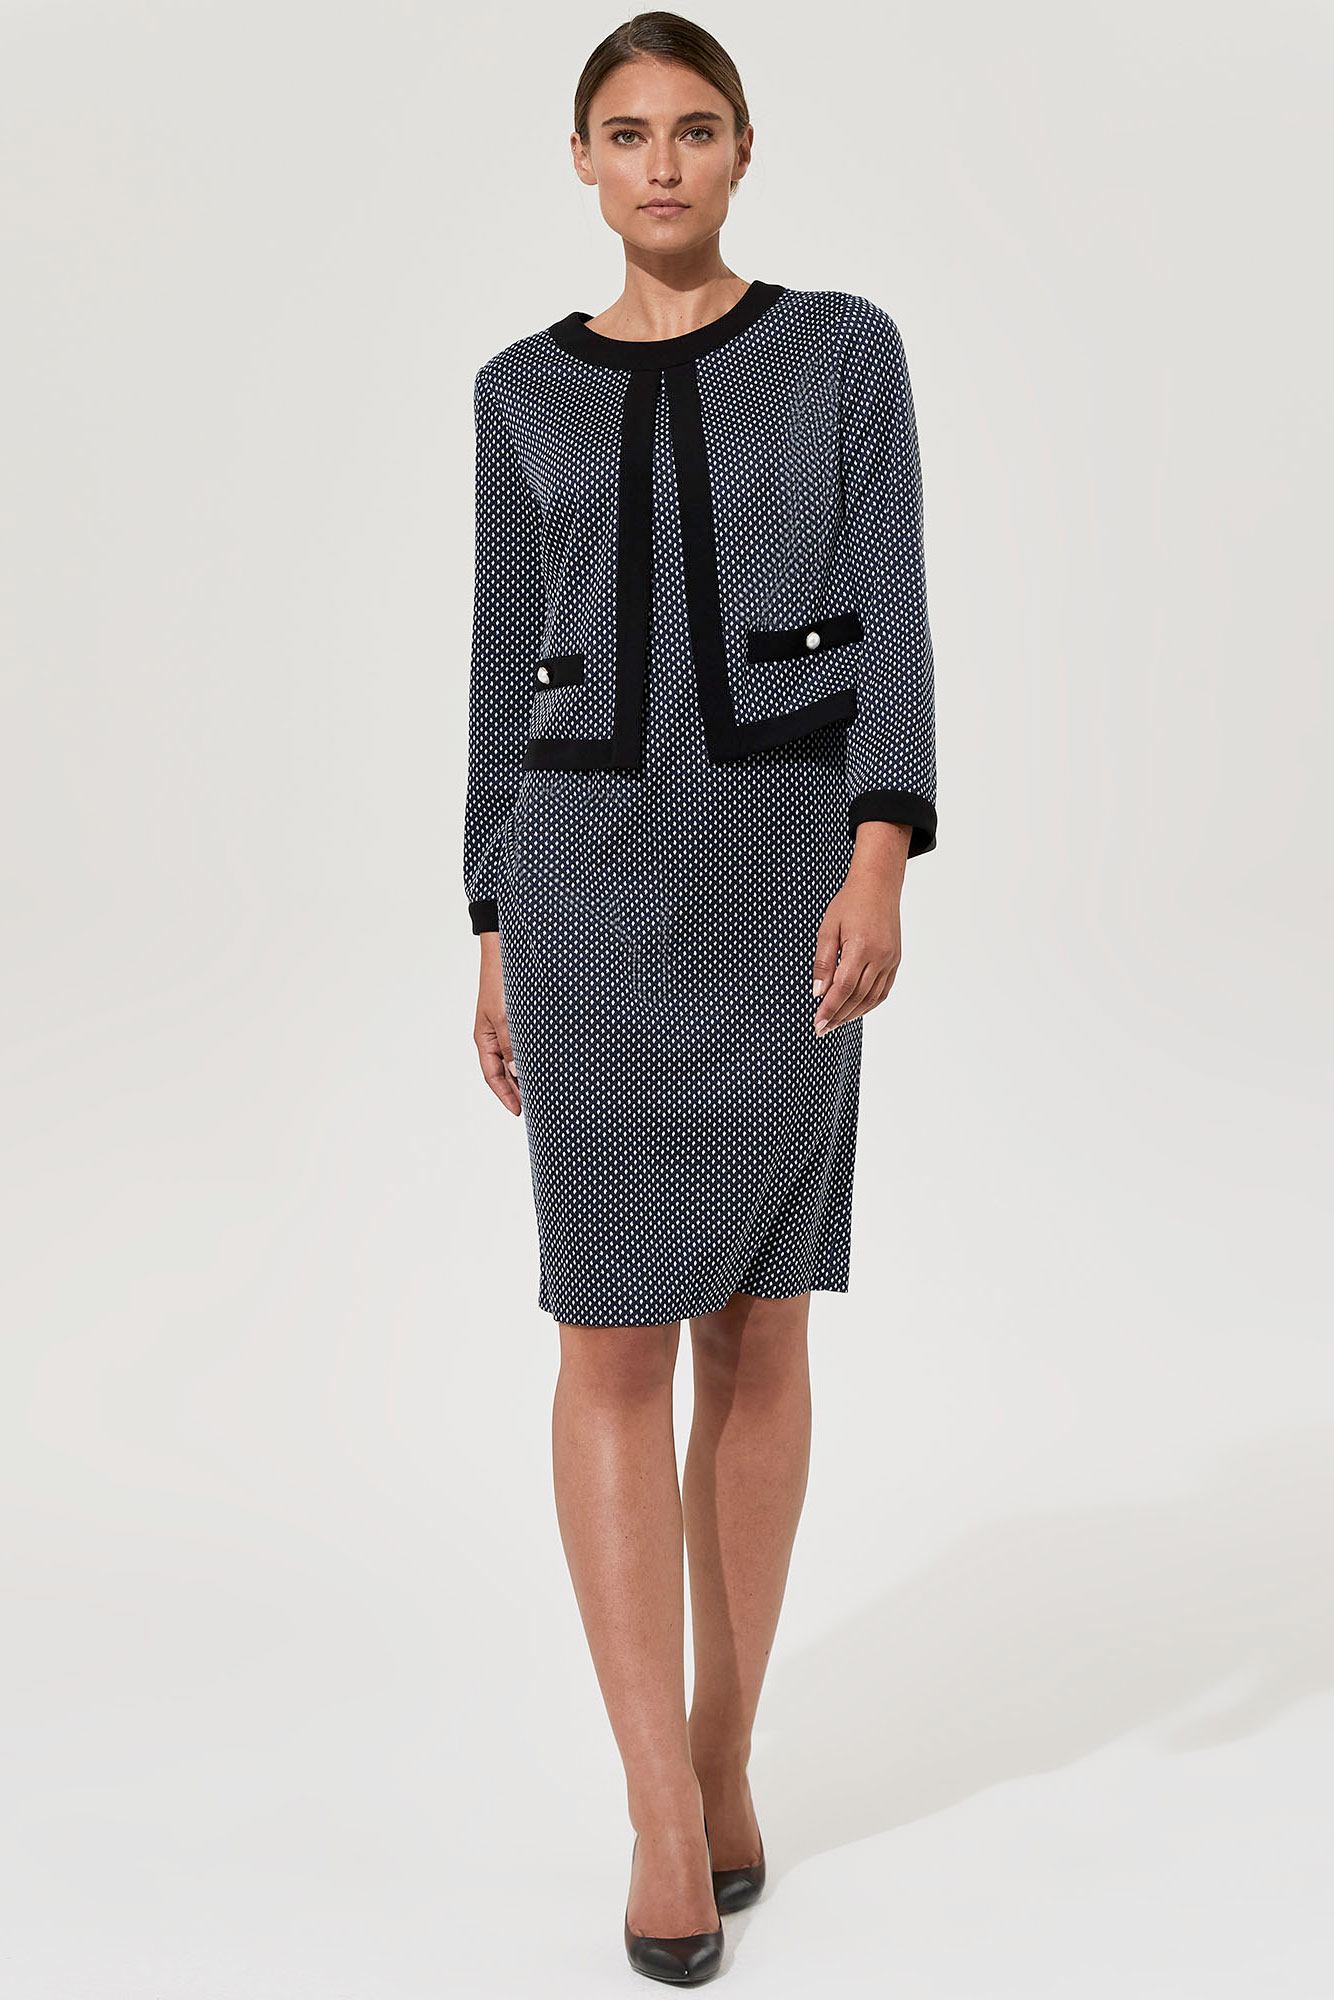 Karl Lagerfeld Paris All-In-One Dress & Jacket